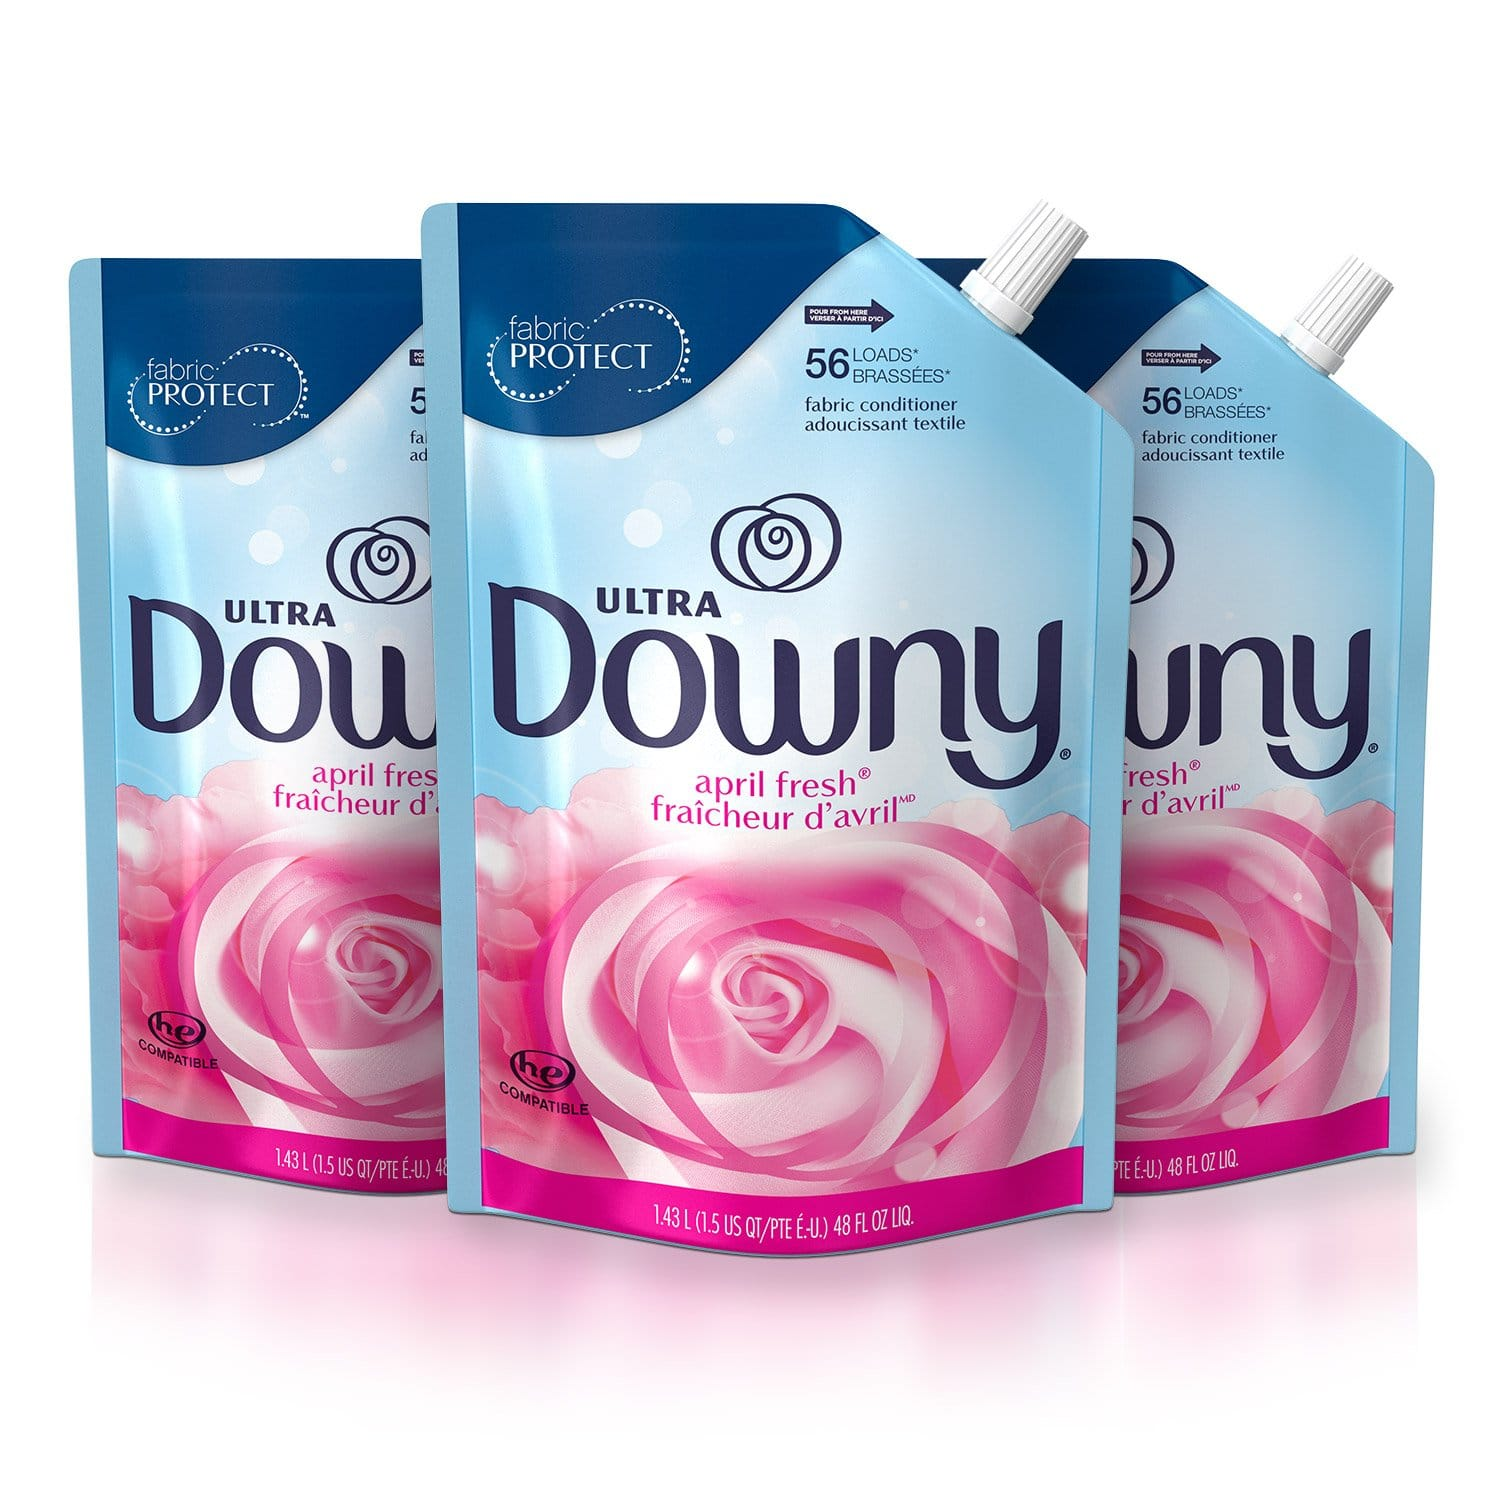 $11.29 Downy Ultra April Fresh Liquid Fabric Conditioner Smart Pouch, Fabric Softener - 48 Oz. Pouches, 3 Pack @ Amazon